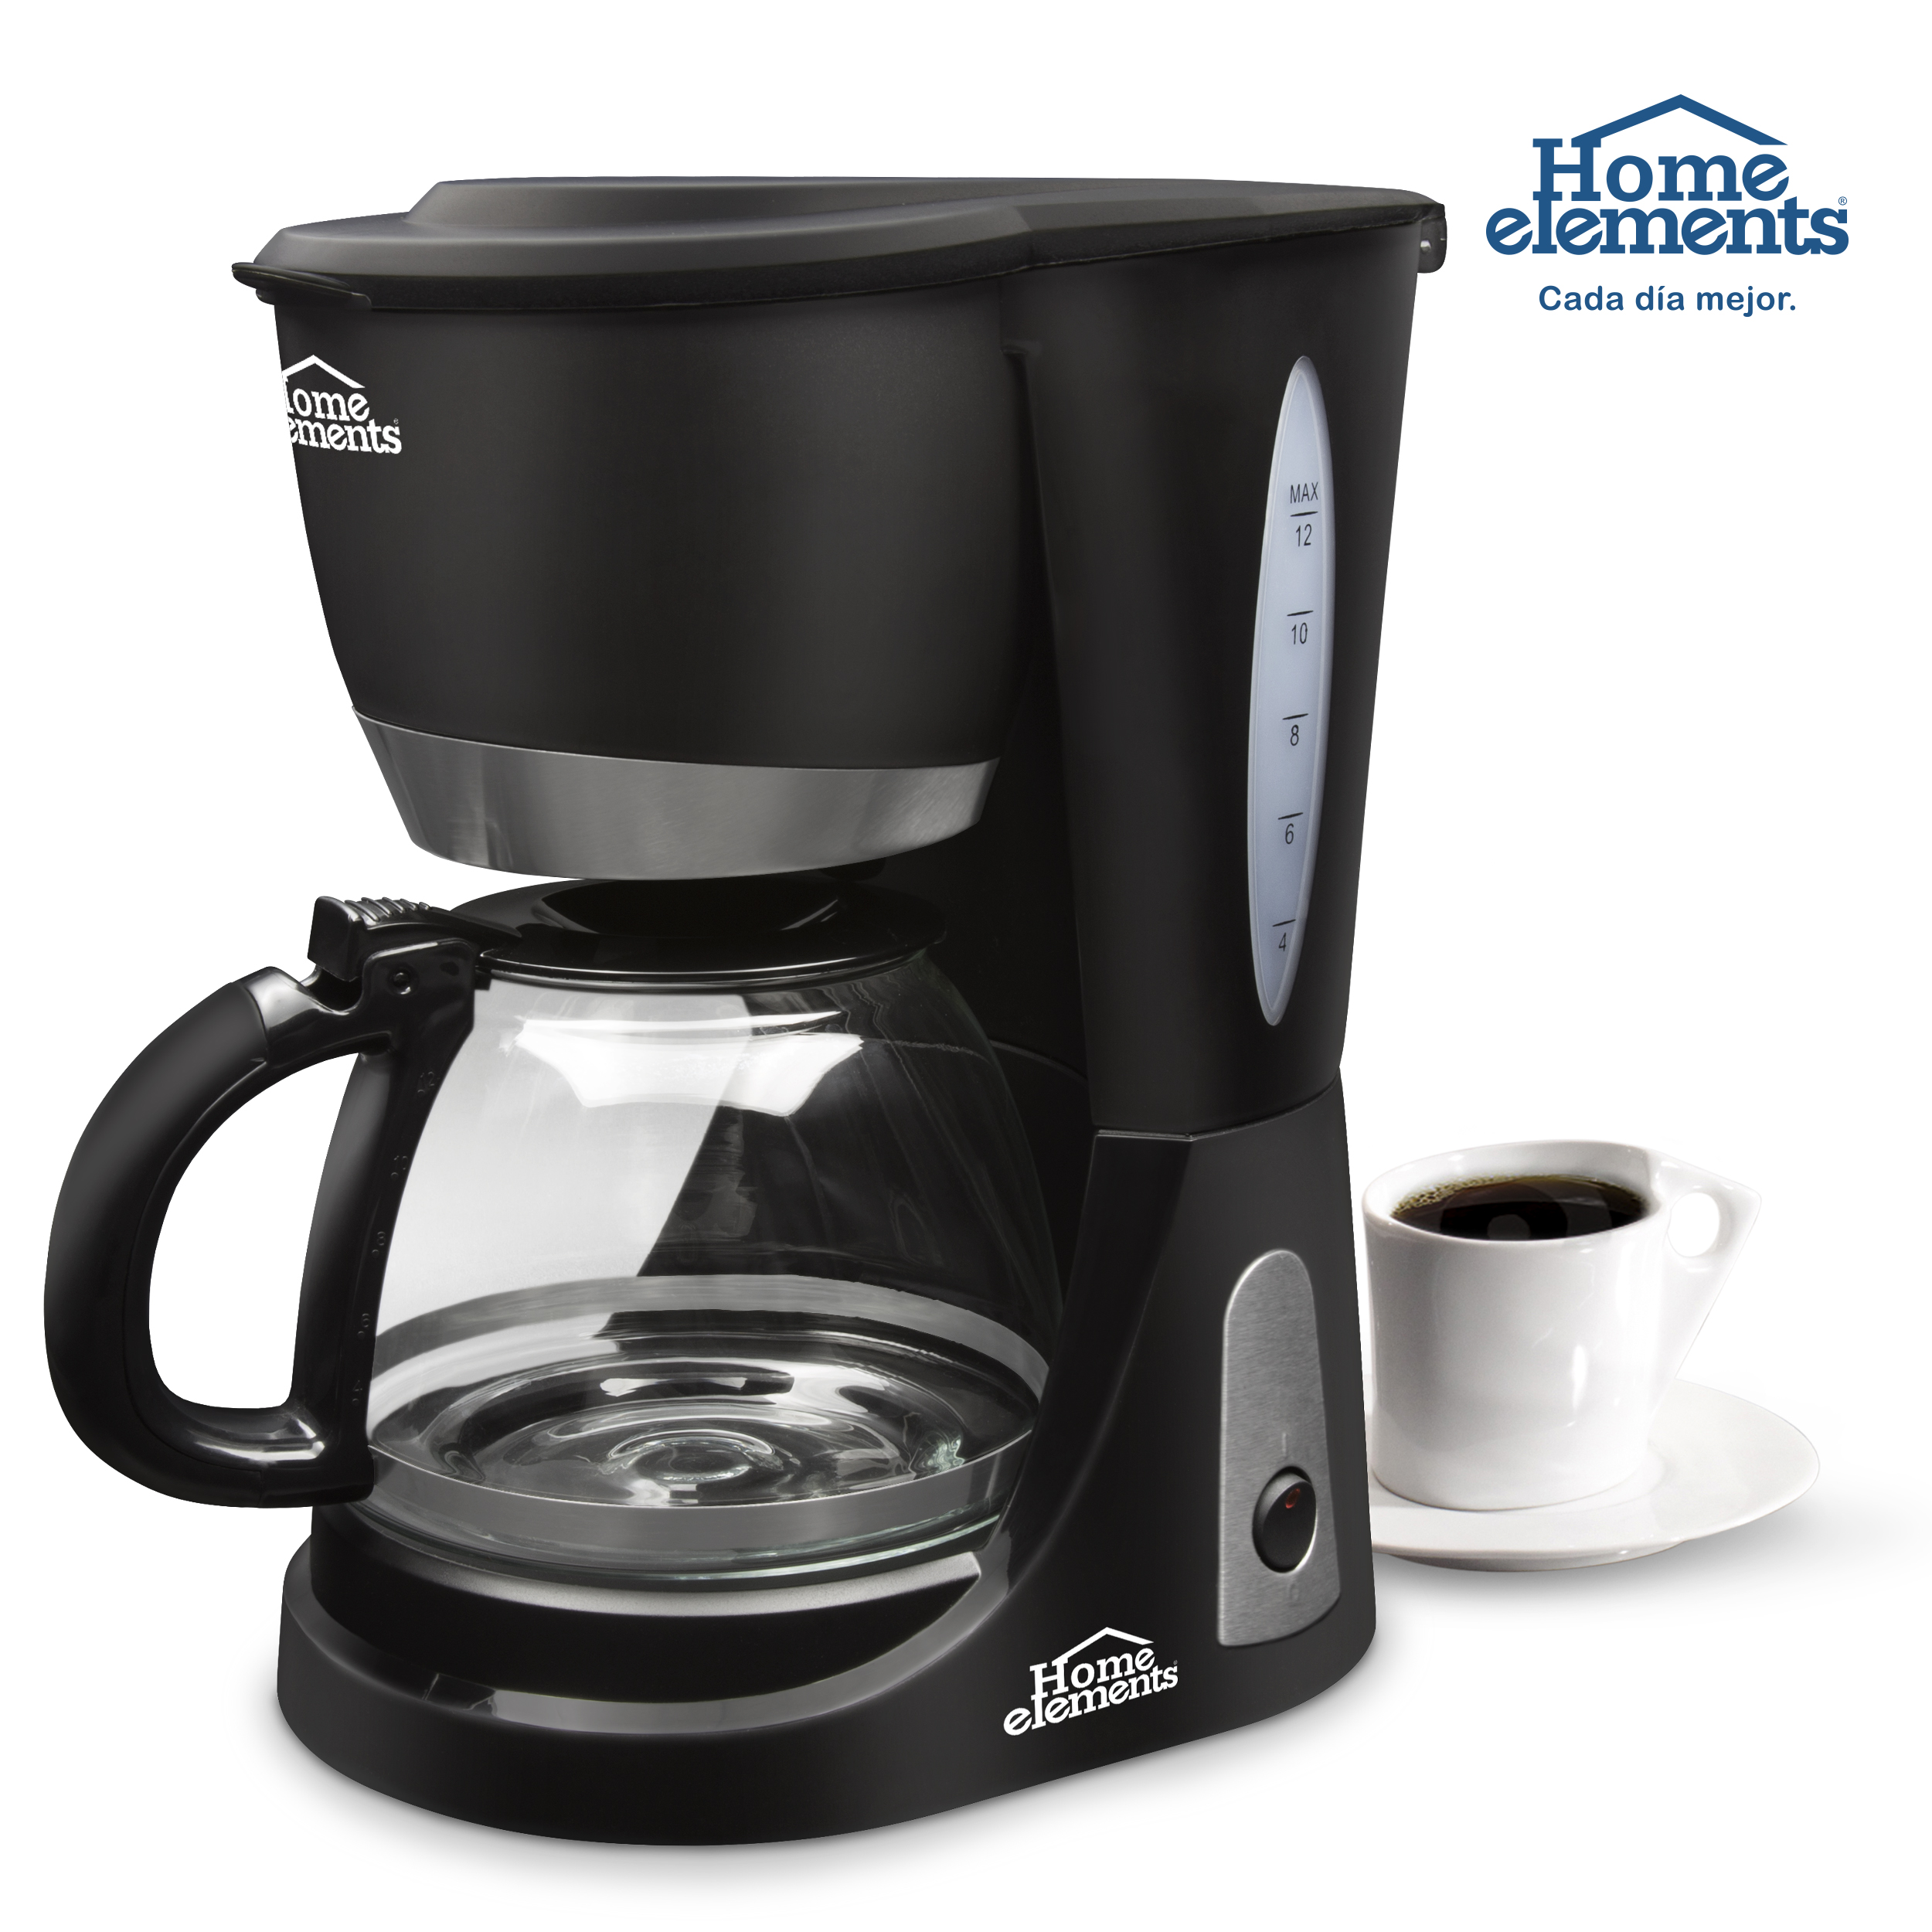 Cafetera Electrica 12 Tazas Mod He 7031 A Home Elements